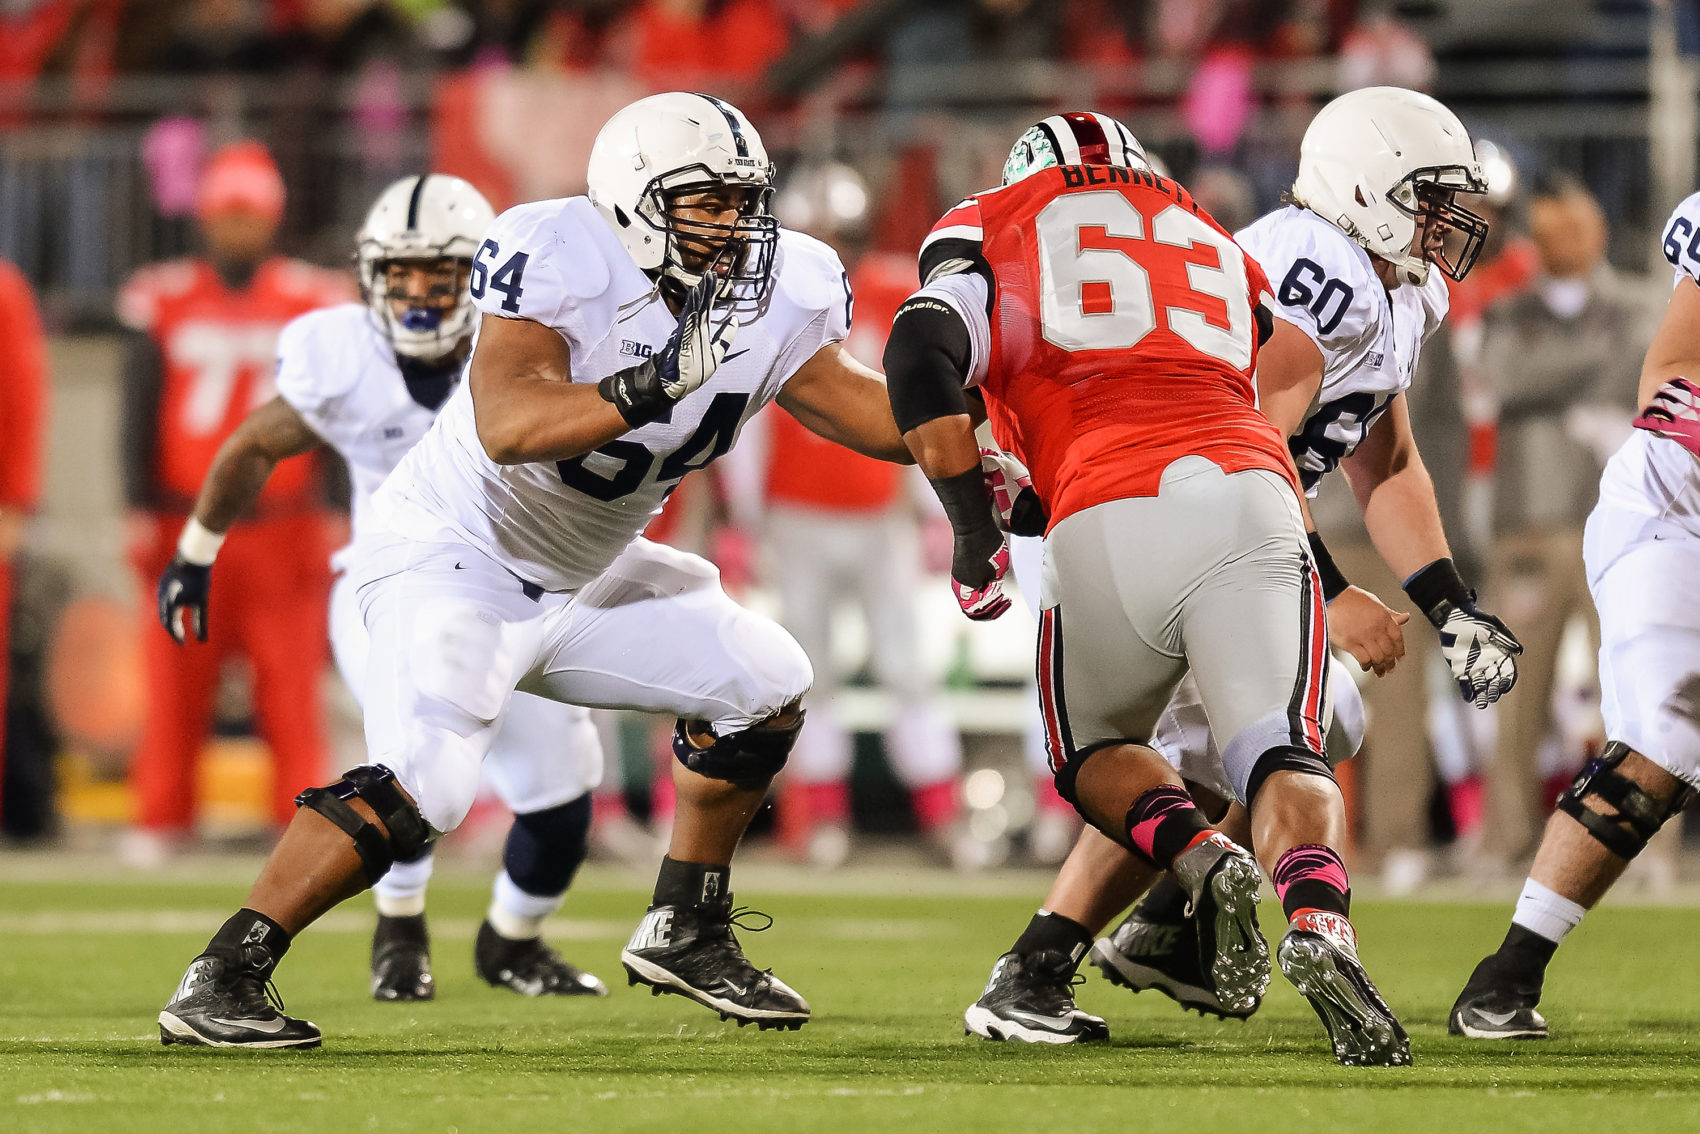 John Urschel (64) playing for Penn State in 2013. (Jamie Sabau/Getty Images)